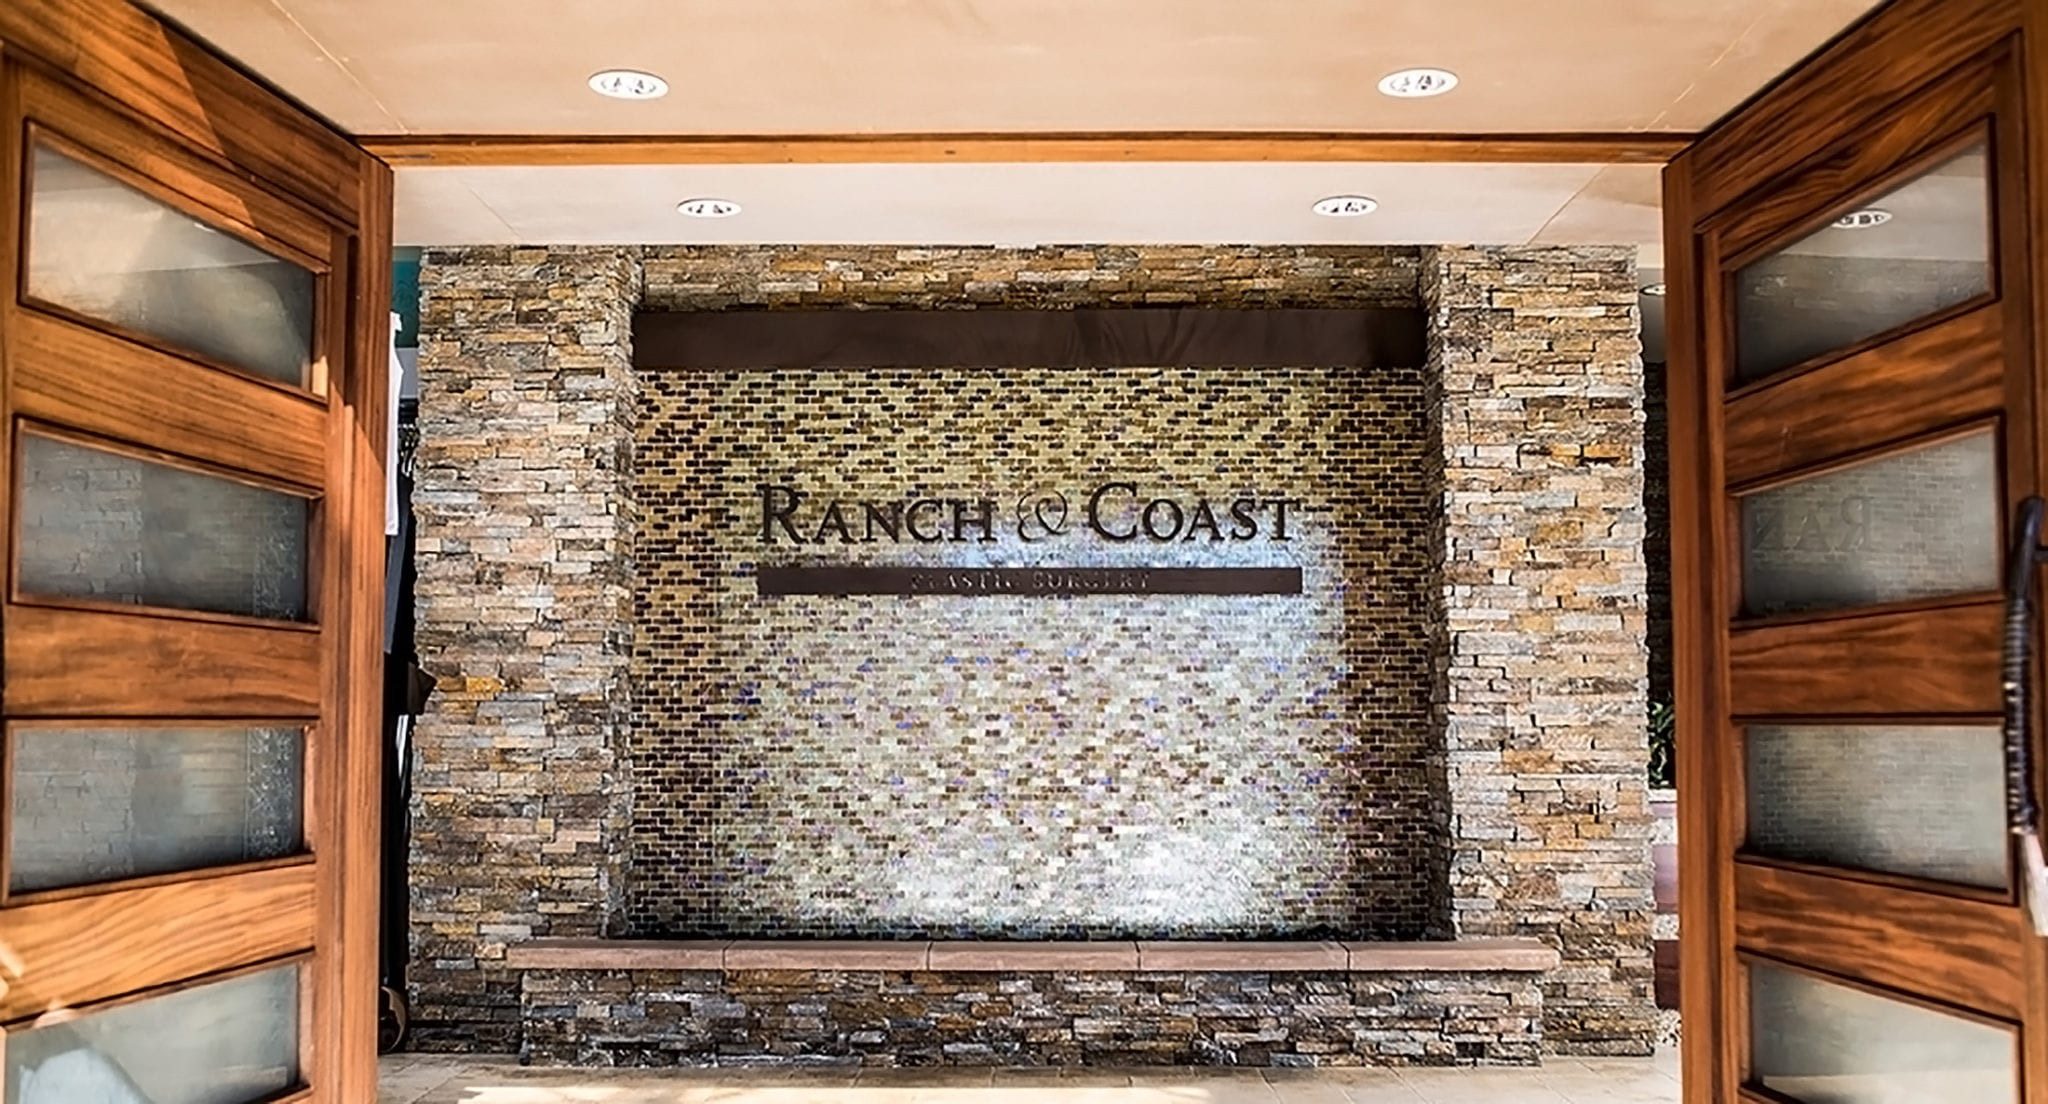 Ranch and Coast Plastic Surgery Center